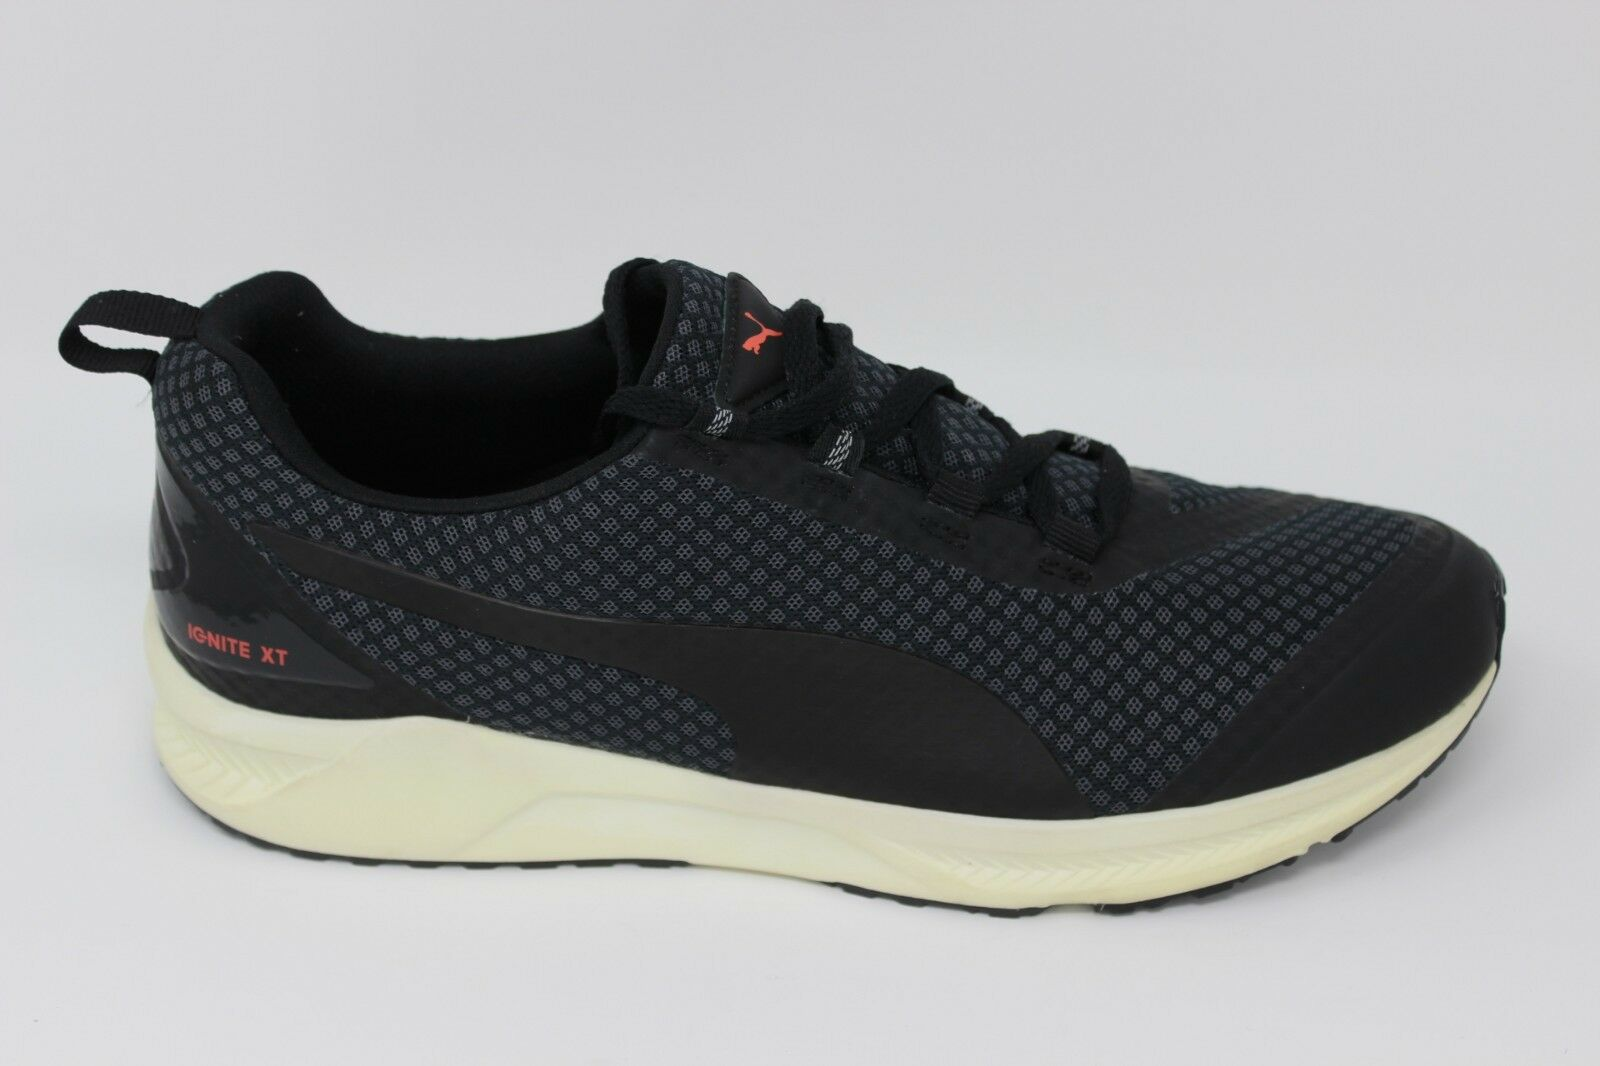 Puma Men's Ignite XT Core 18857902 Asphalt-Black-Red Blast Brand New